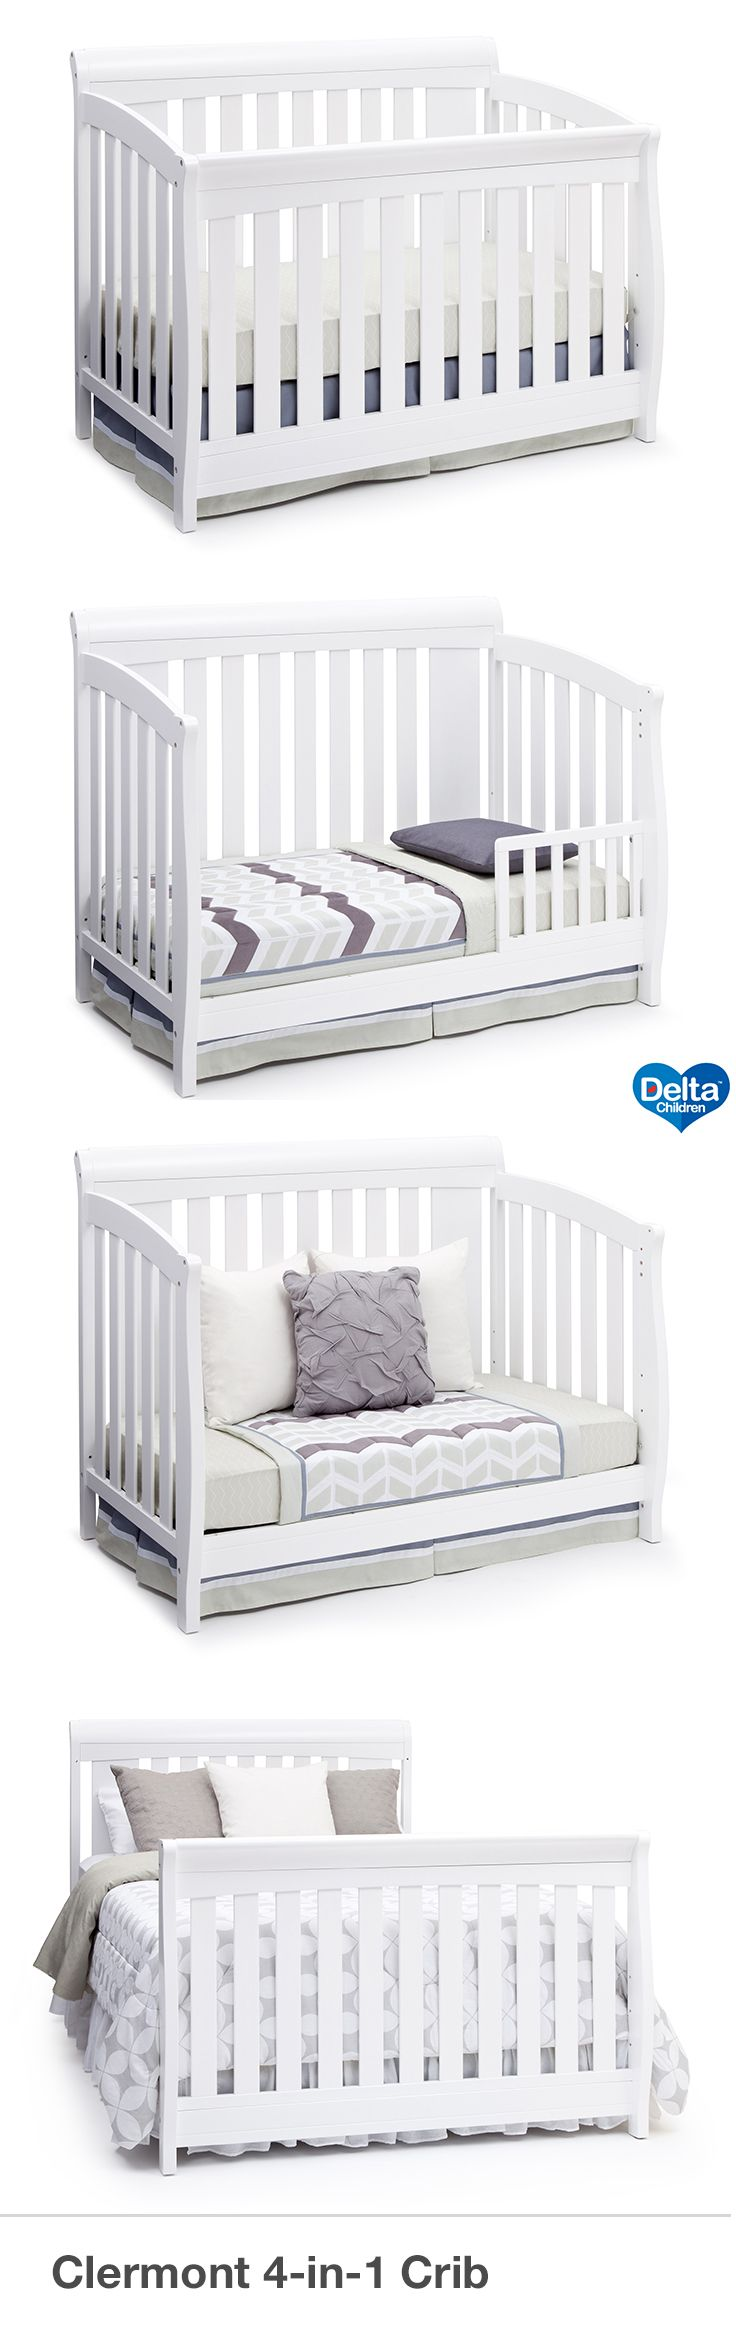 Baby Cache Heritage Lifetime Convertible Crib | Toys R Us Baby Crib | Baby Cache Cribs